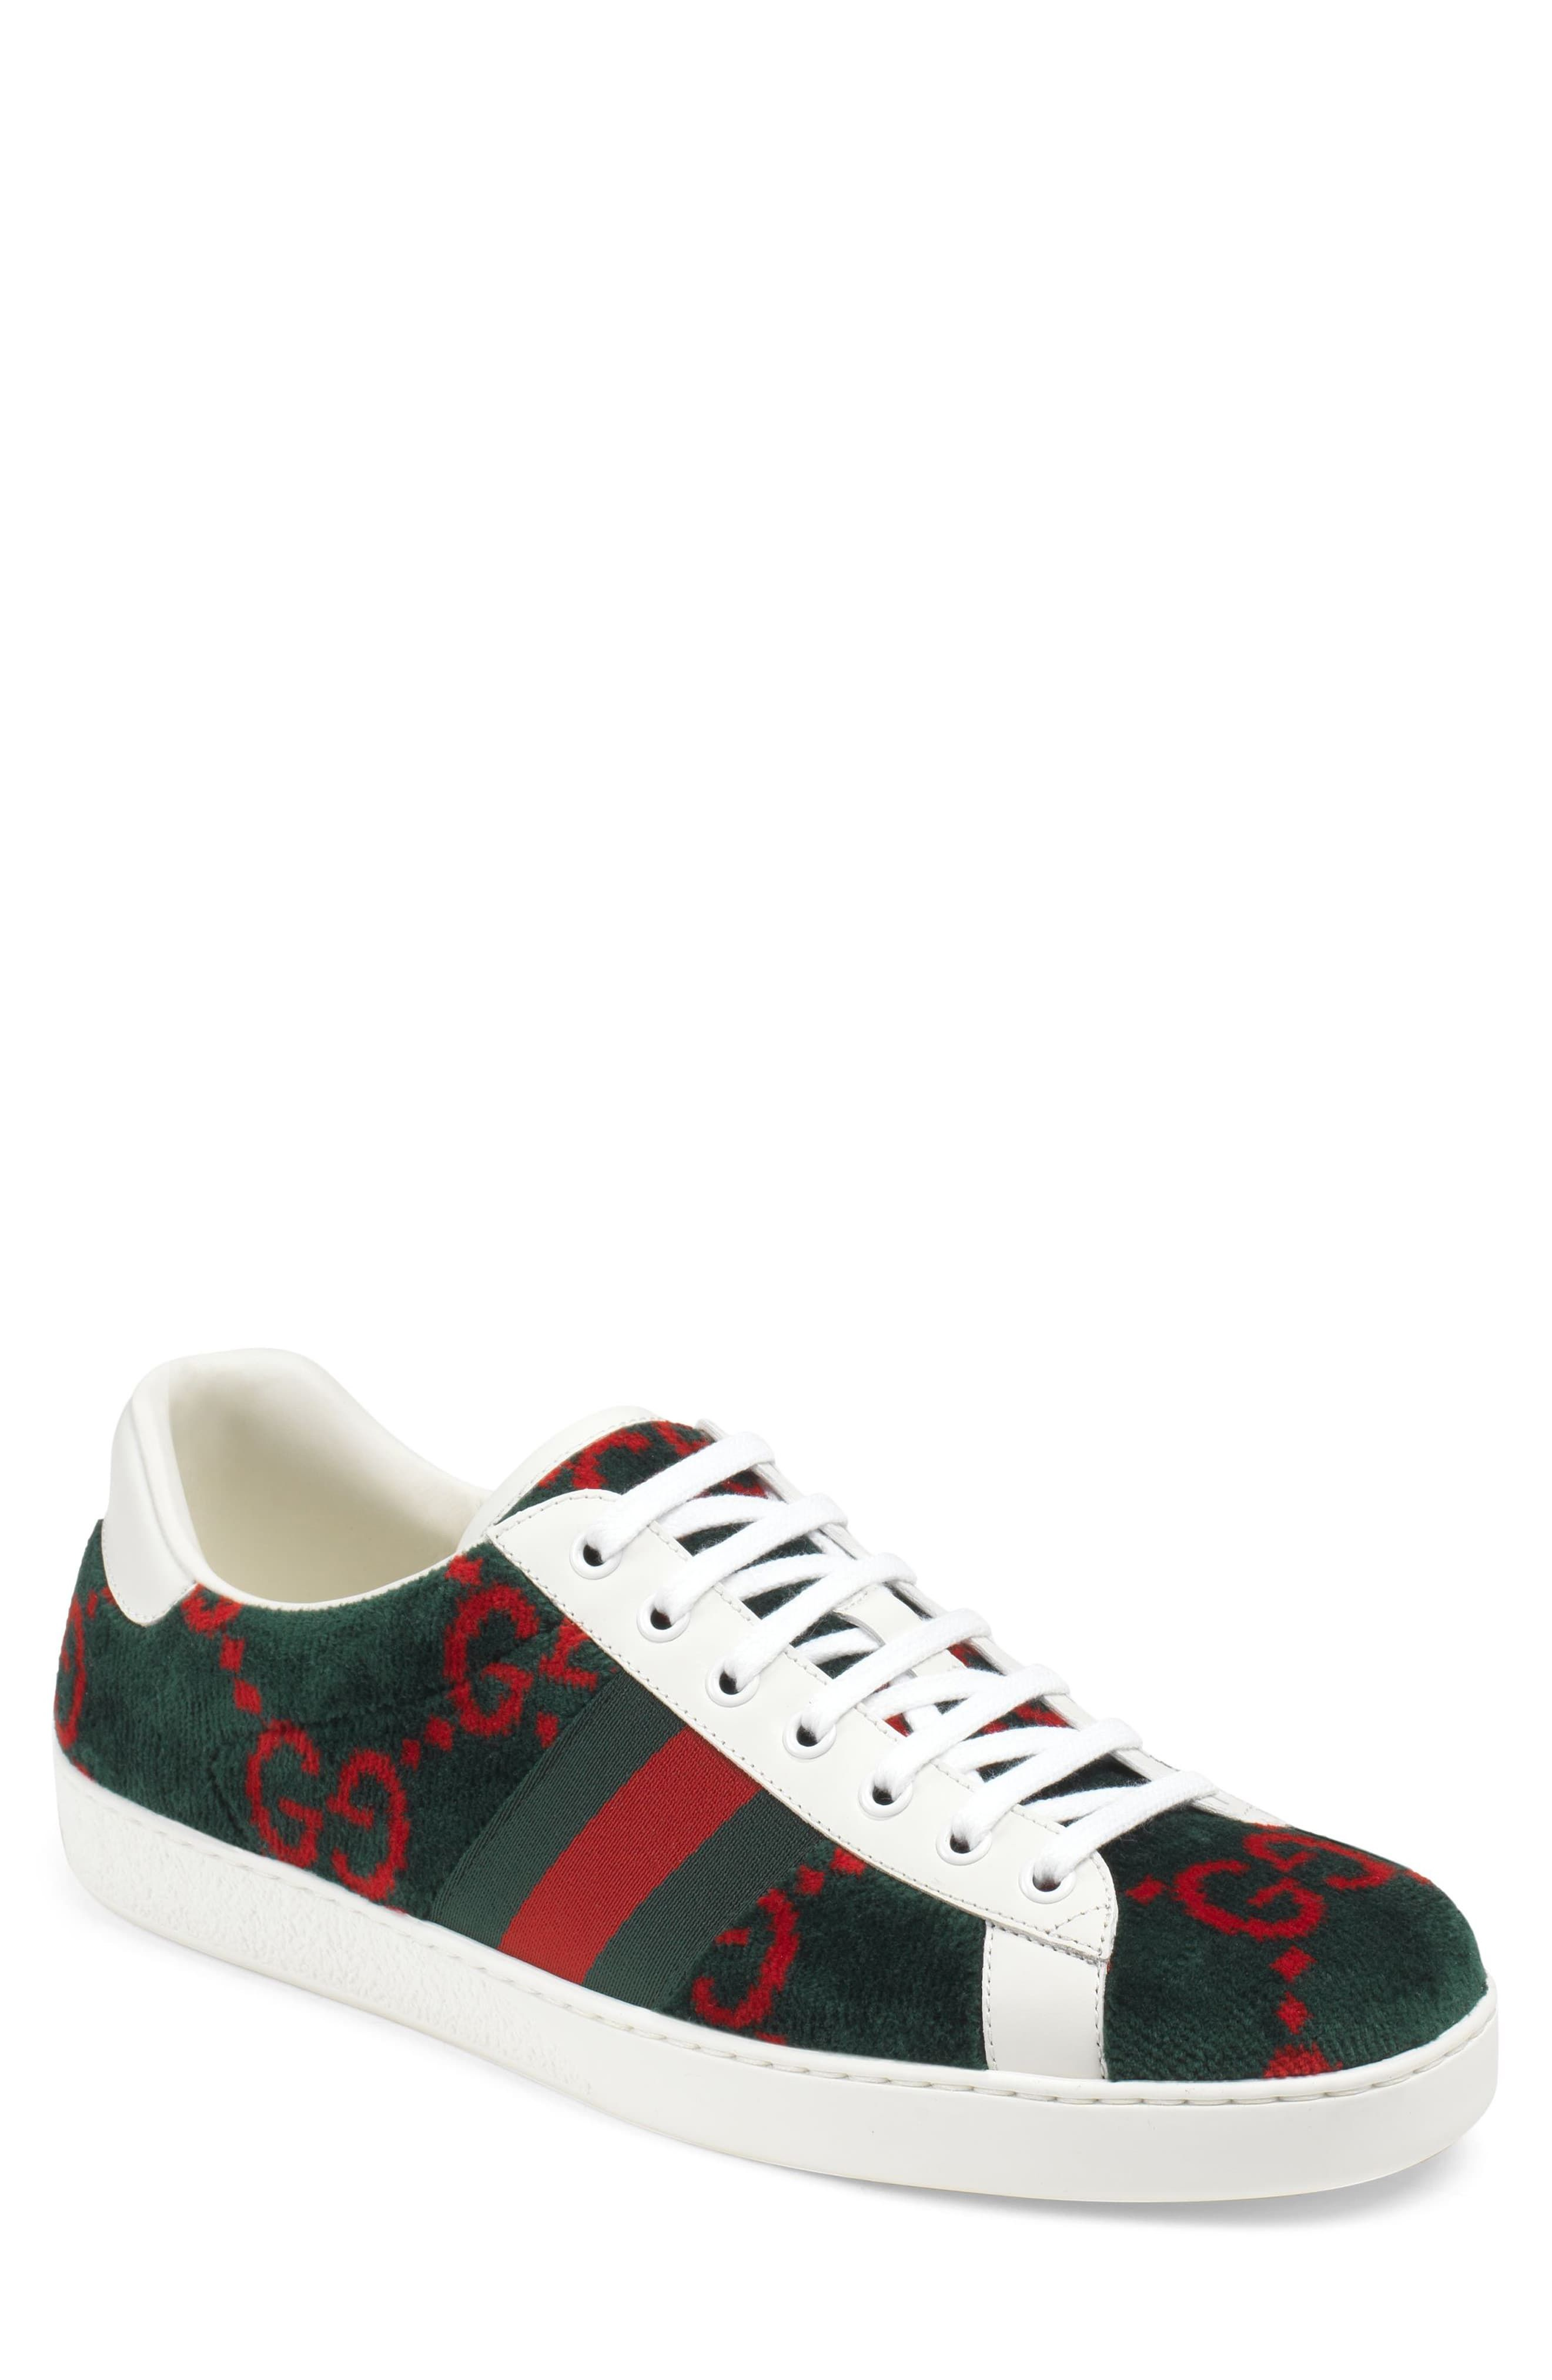 9ac40dc3e9 Men's Gucci New Ace Gg Logo Sneaker, Size 6US / 5UK - Brown in 2019 ...